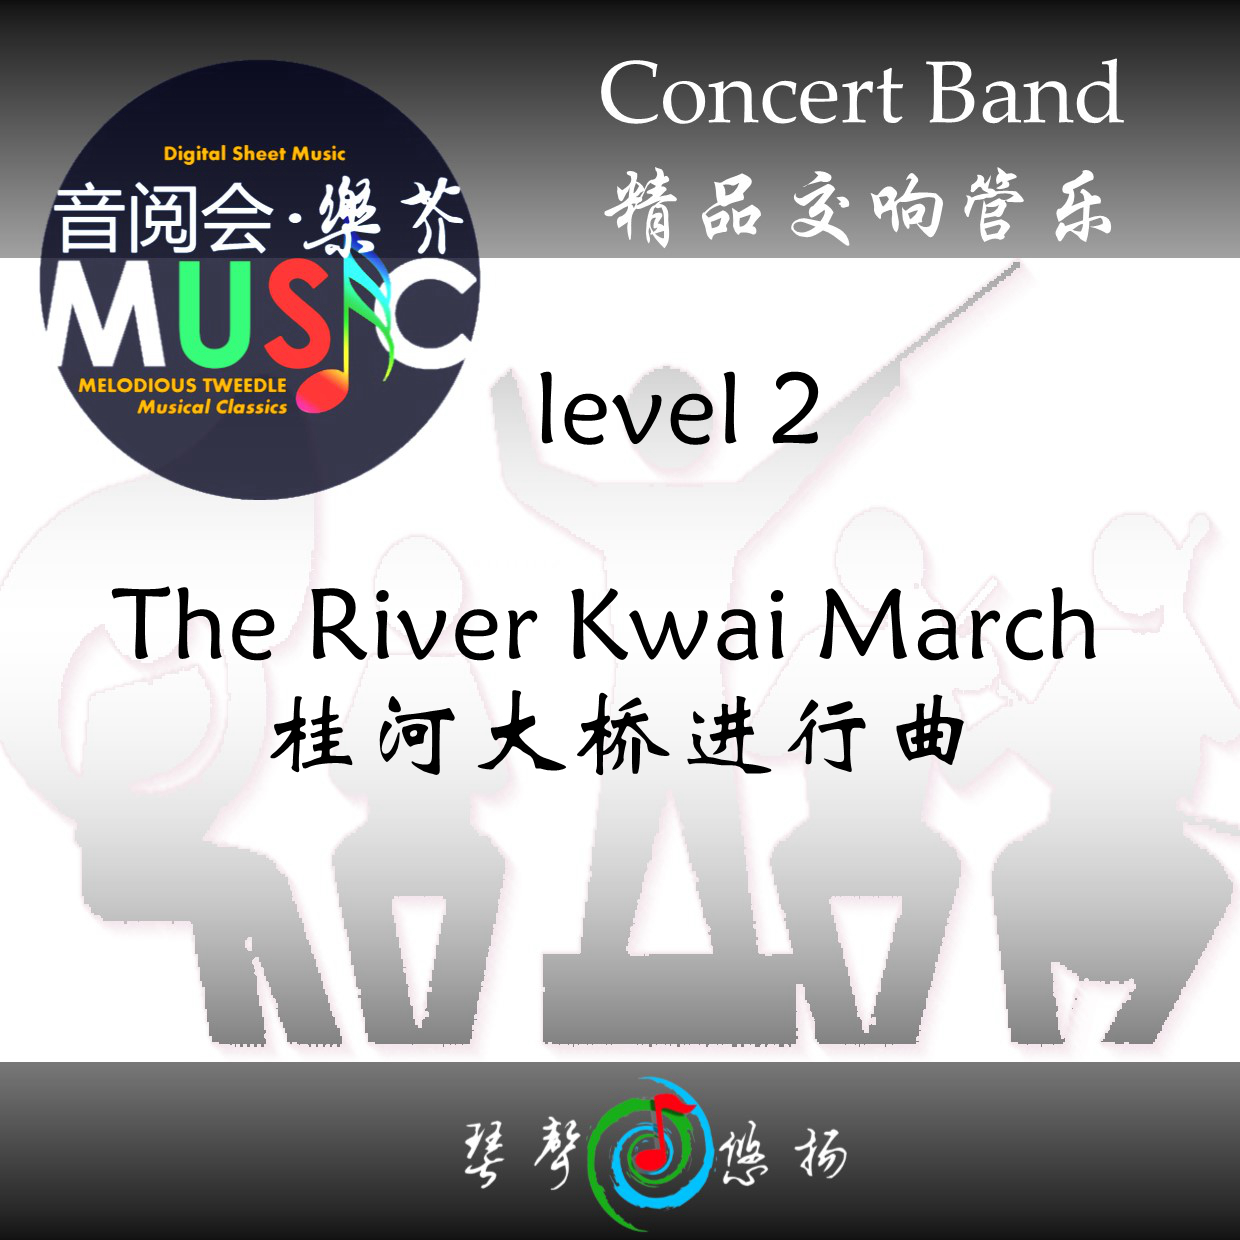 2 The River Kwai March Symphony Orchestra bridge on the River Kwai March score + spectrum